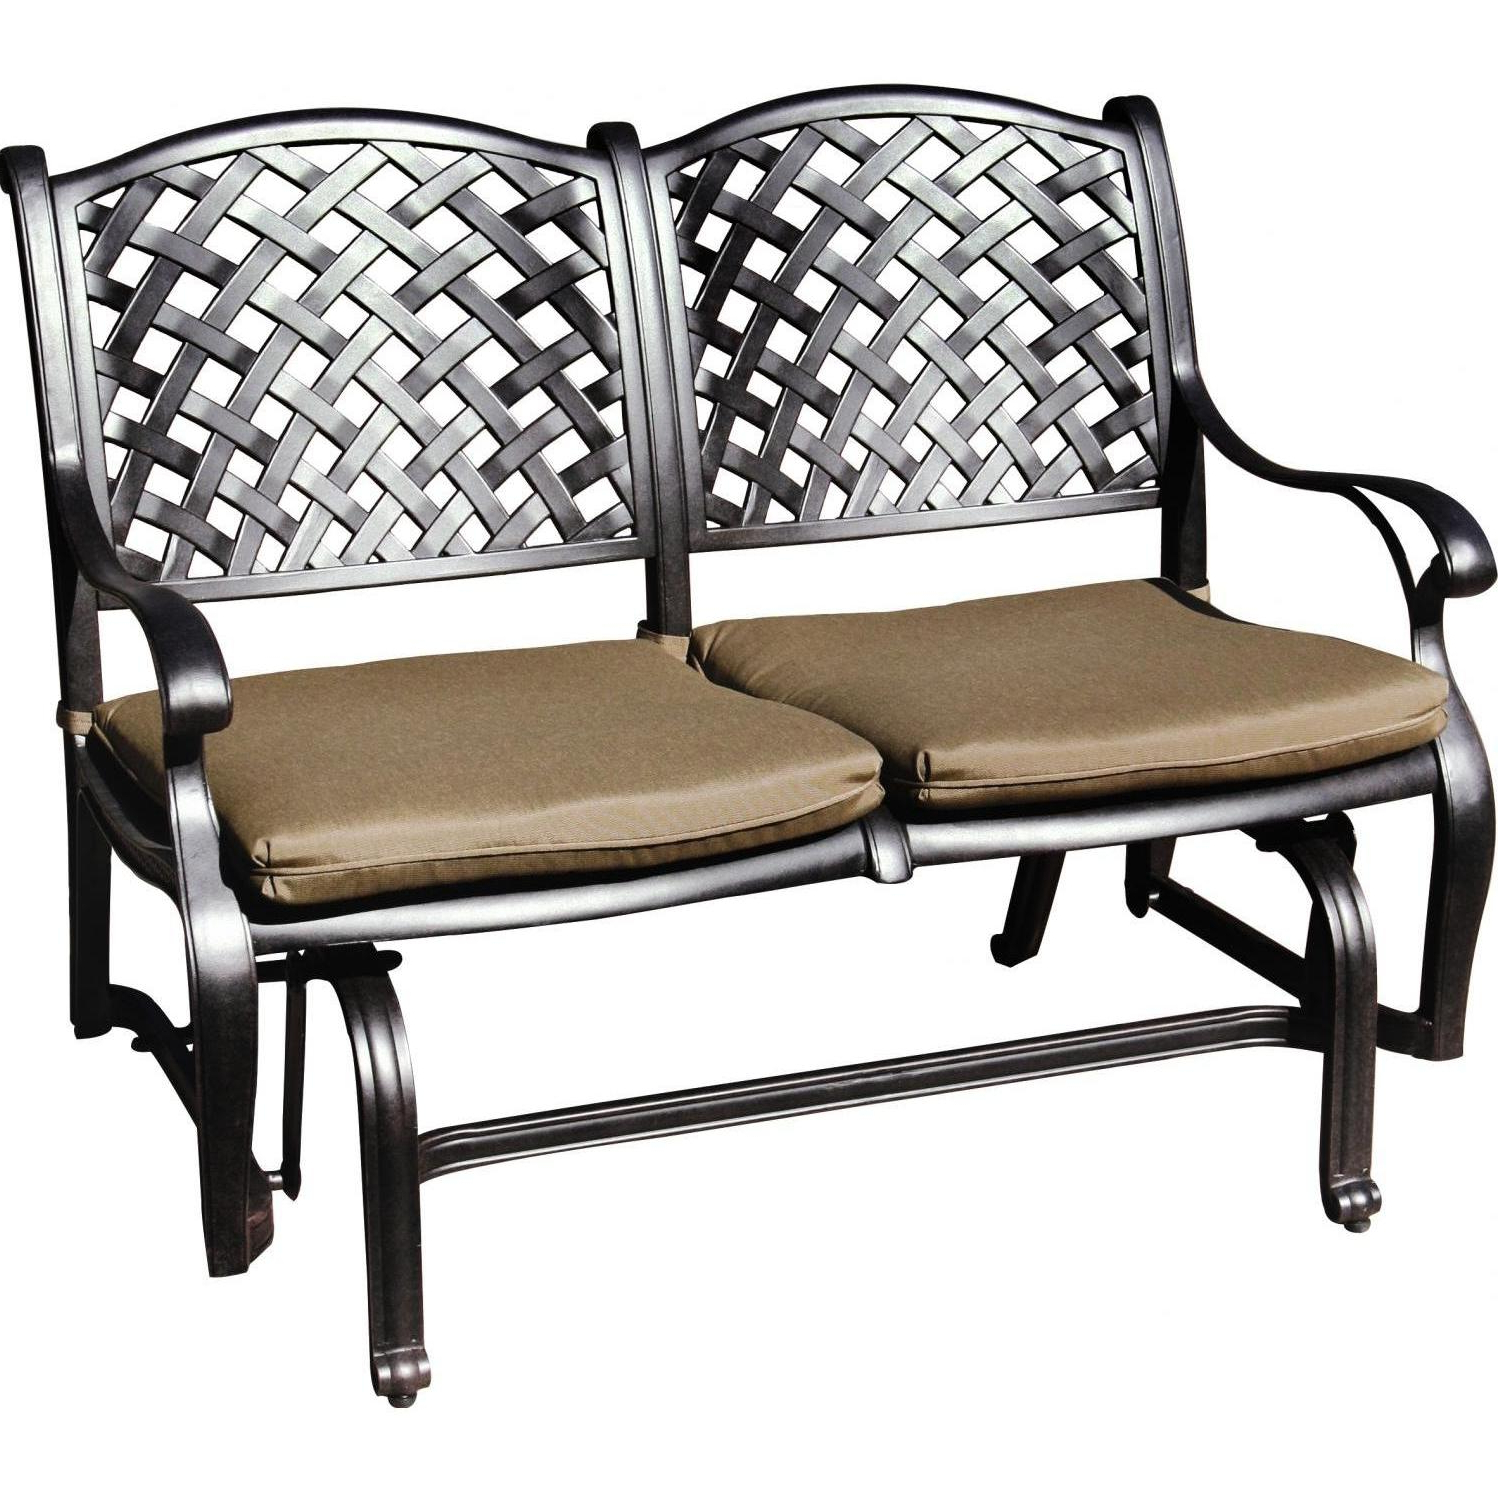 Well Liked Rocking Glider Benches With Cushions With Regard To Furniture: Vintage Metal Porch Glider Design For Your (Gallery 10 of 30)